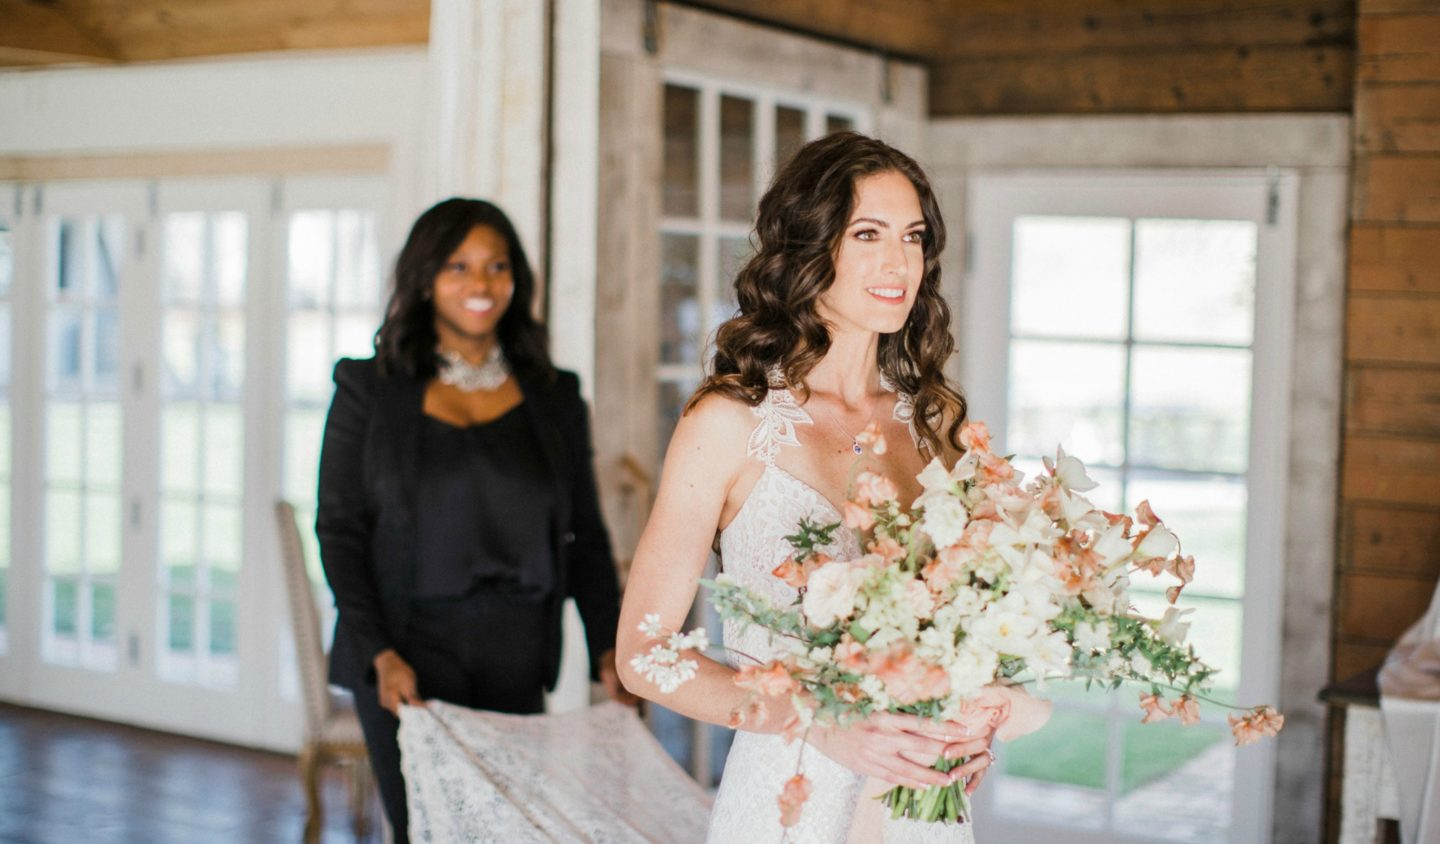 5 BENEFITS OF HIRING A BRIDAL STYLIST